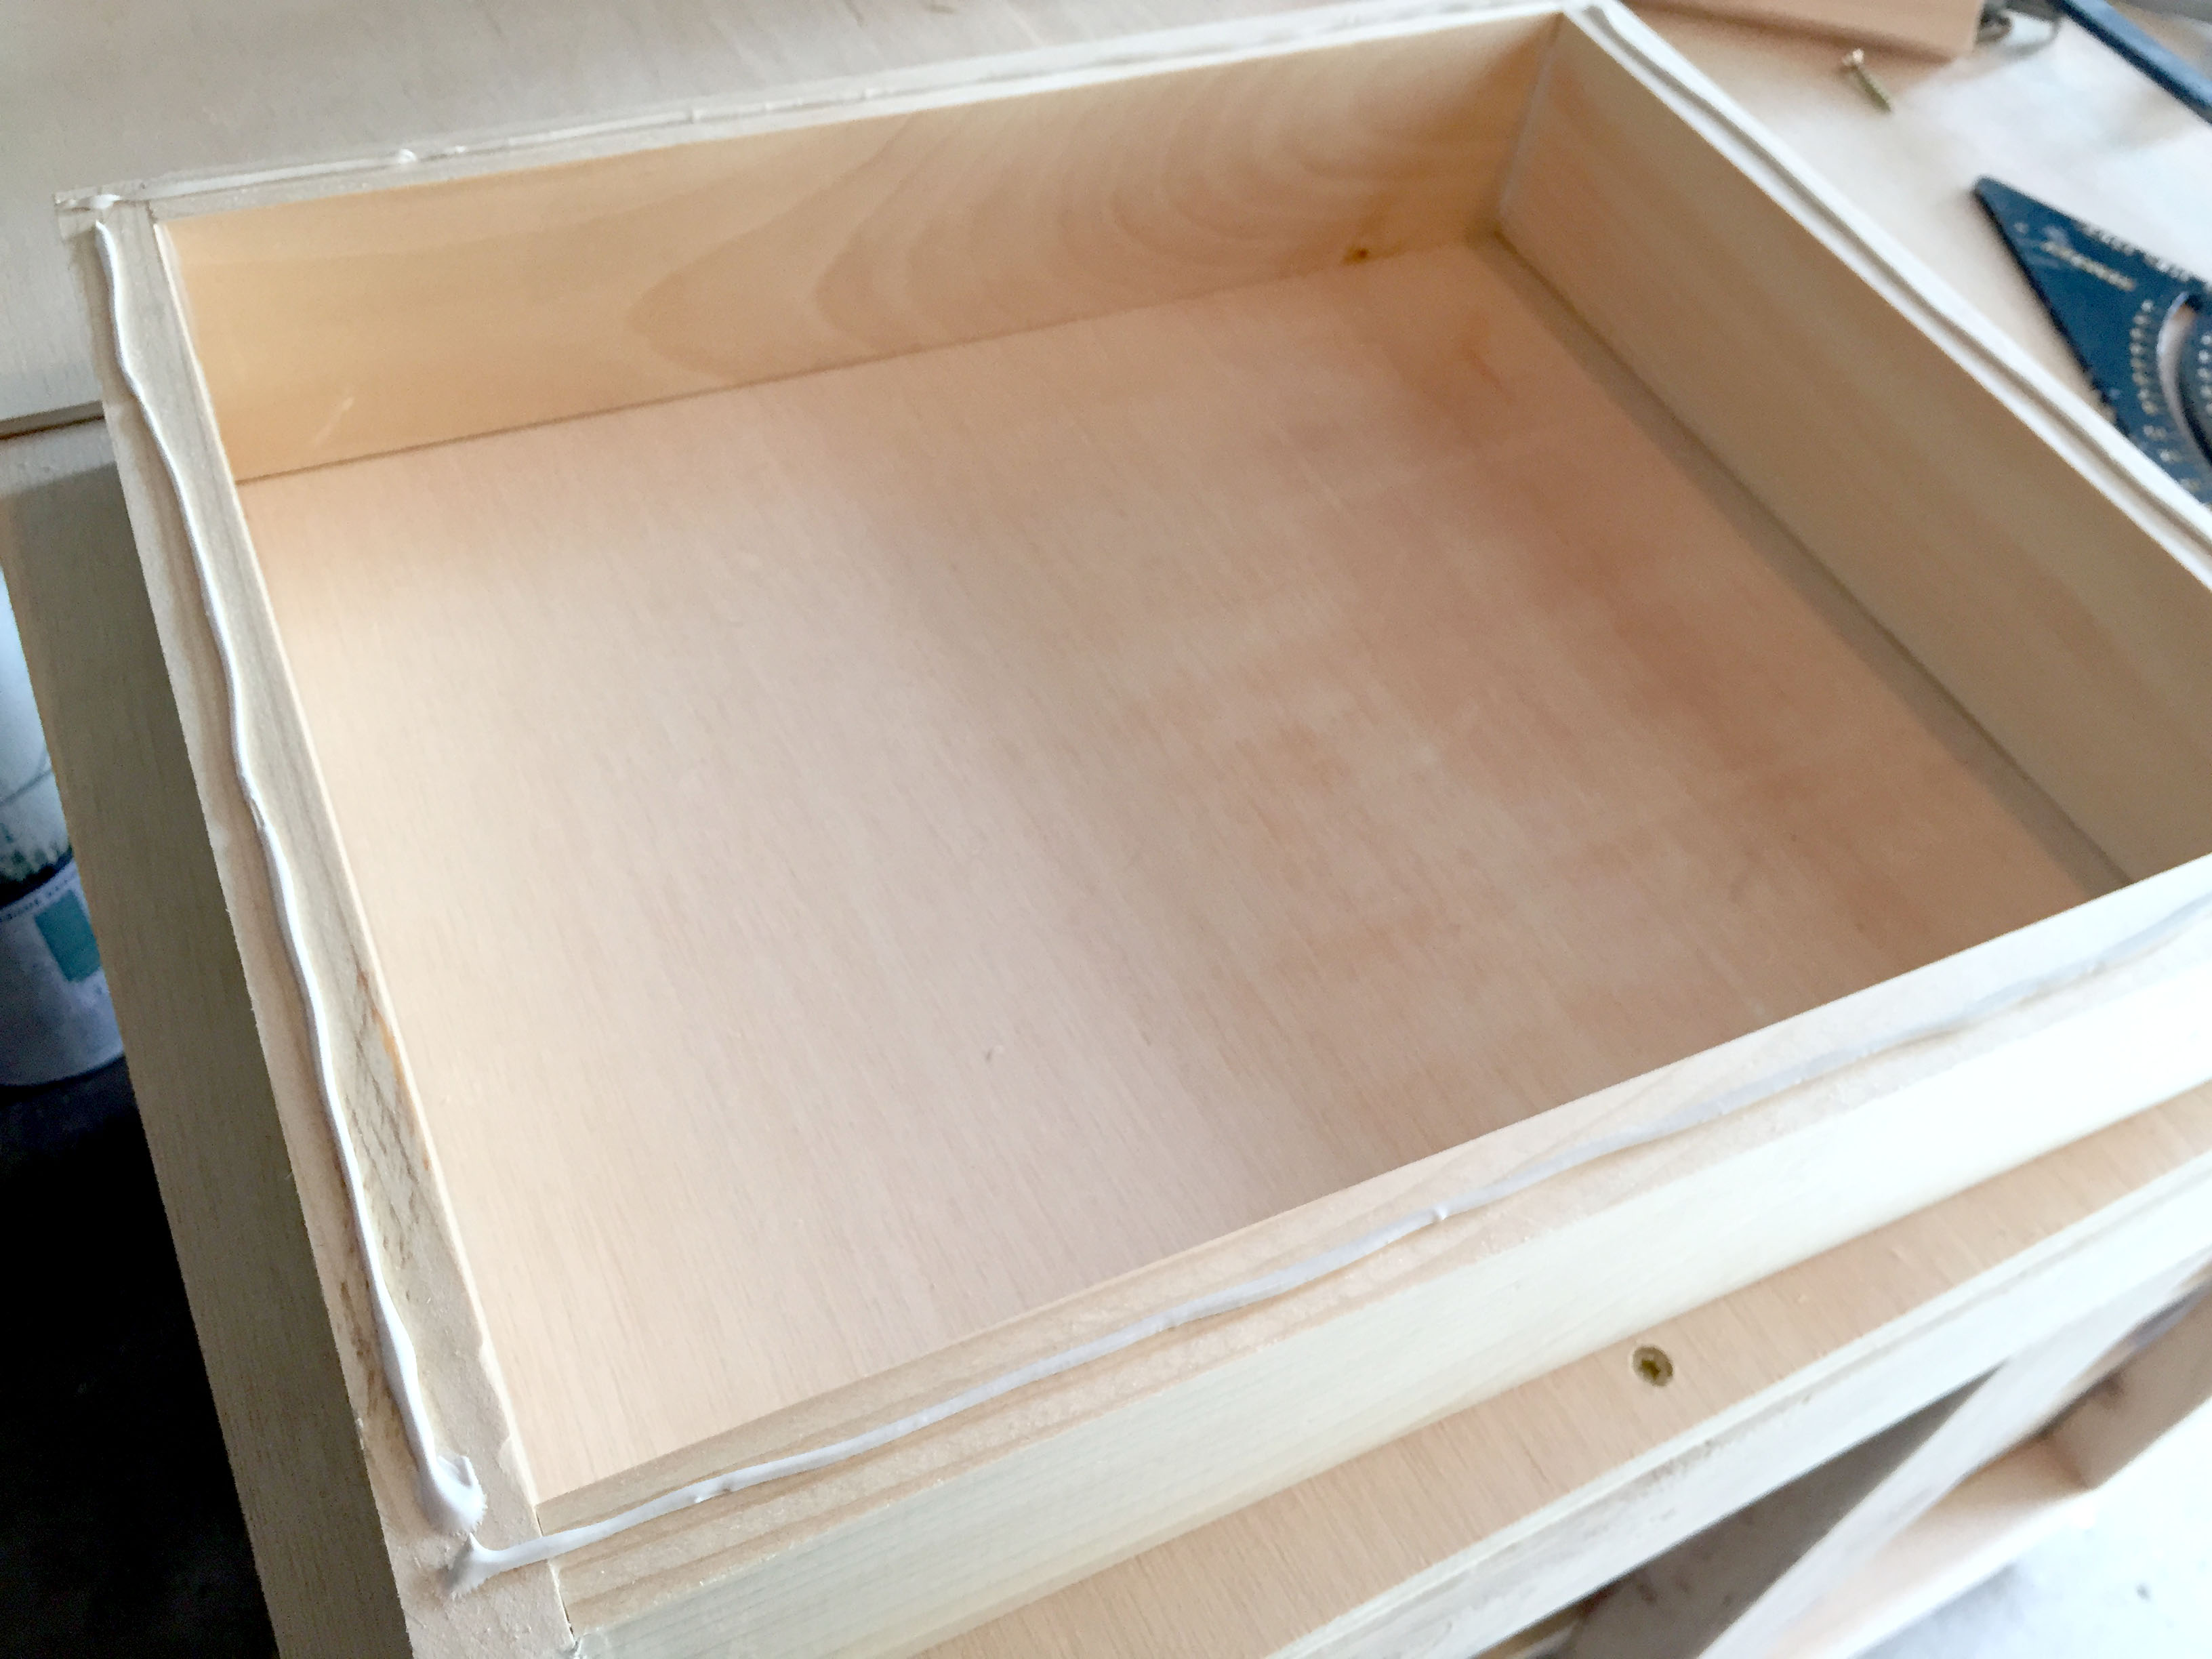 Making Basic Drawers with Custom Handles